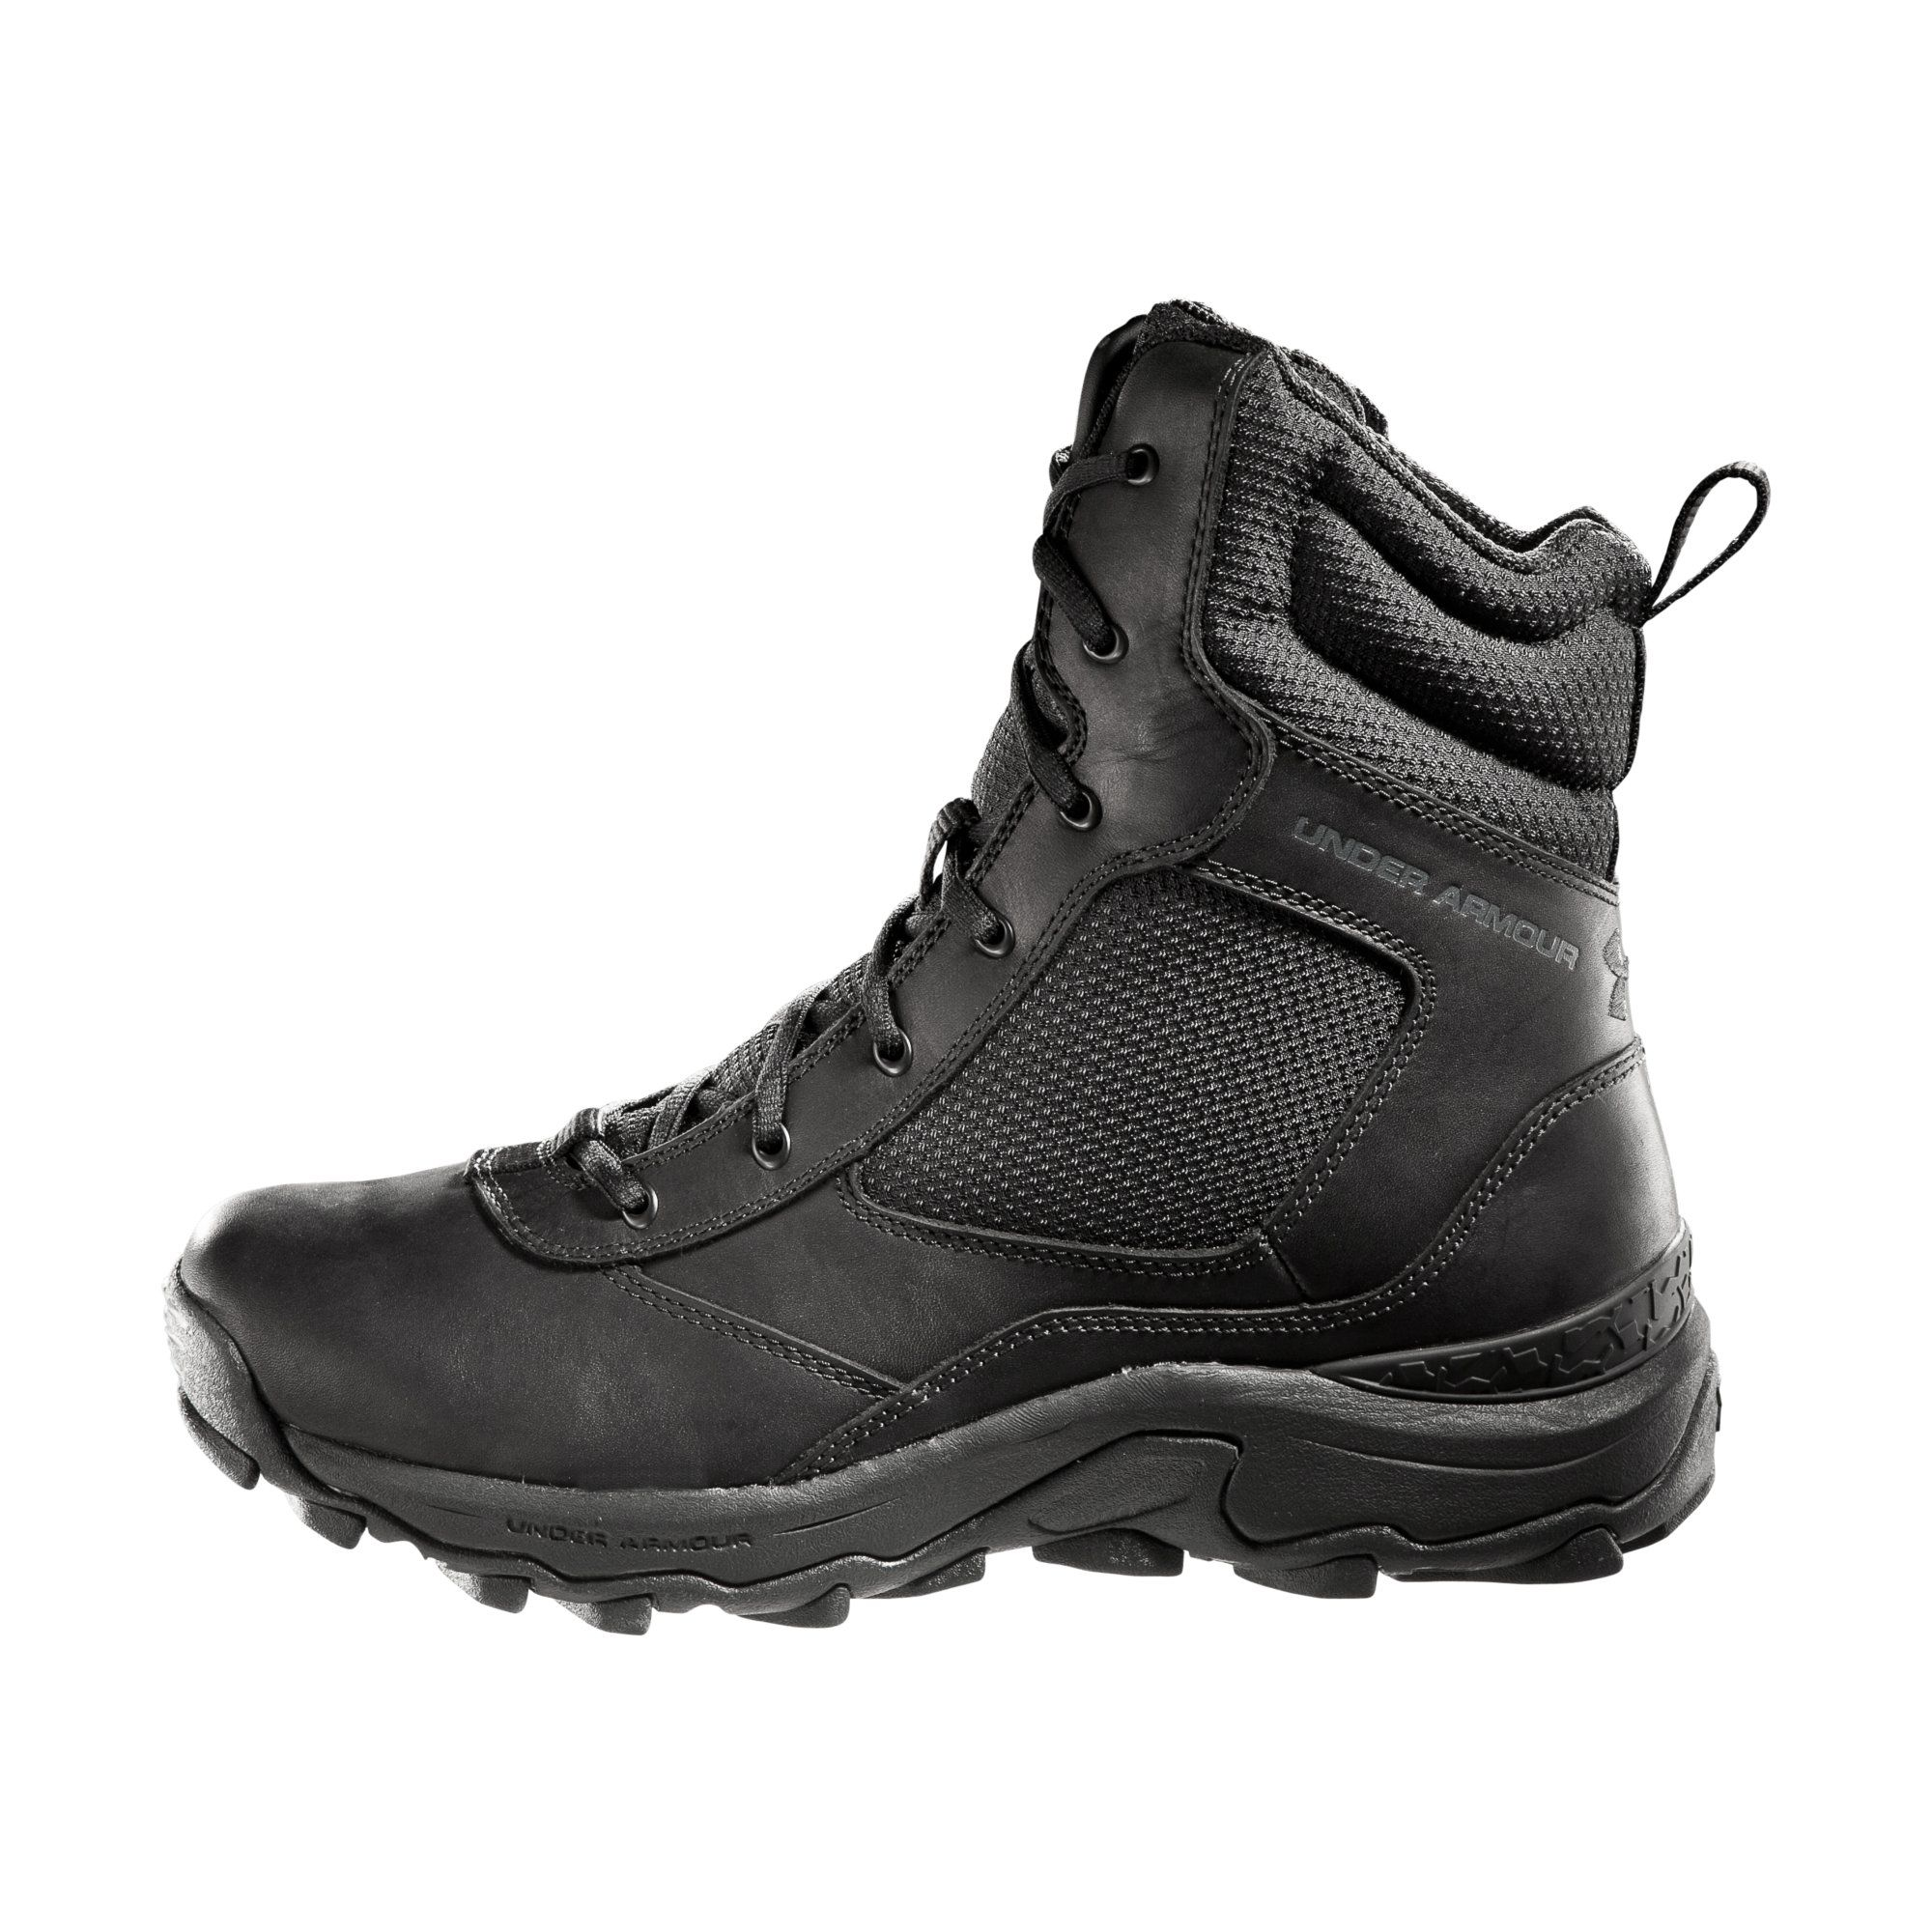 769a0e13ea2 Pin by Lobzang Penjor on Boots | Boots, Hiking boots, Combat boots